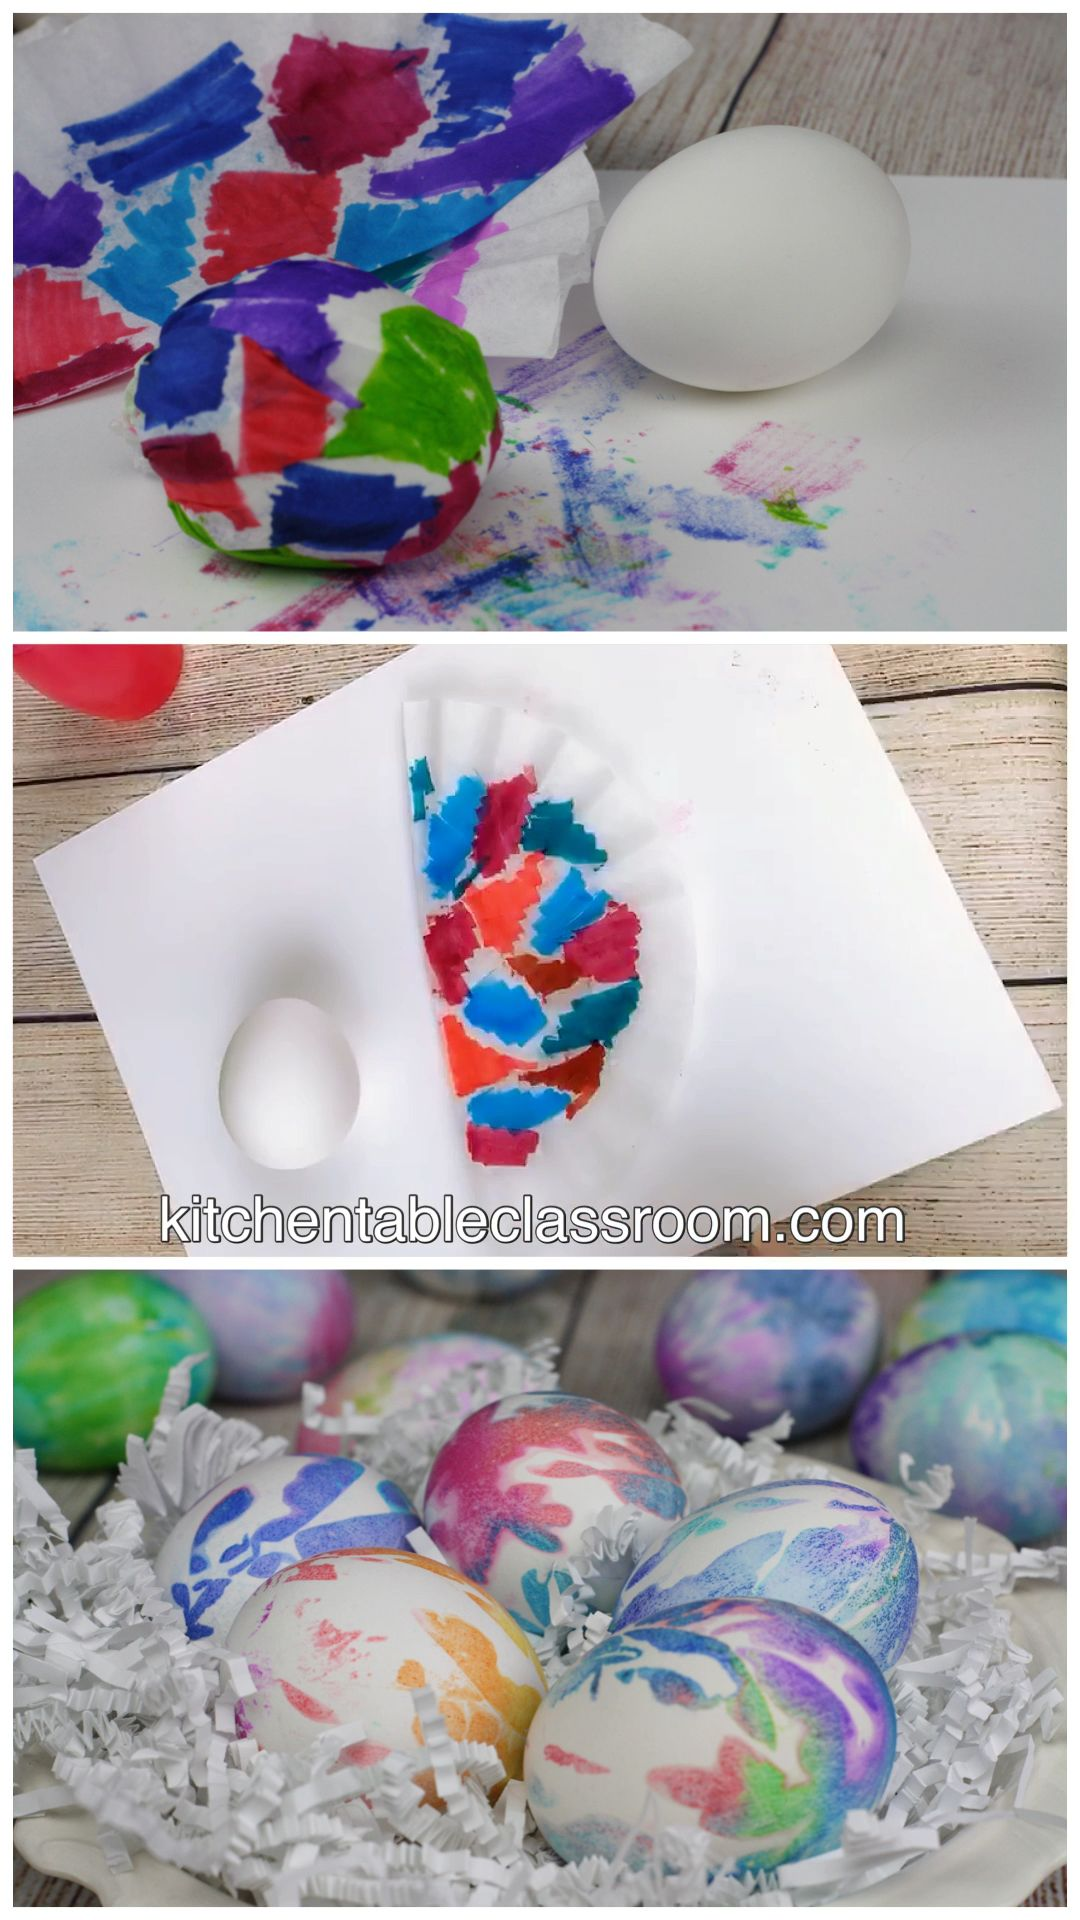 How to Decorate Easter eggs with Washable Markers- 3 Easy Ways - The Kitchen Table Classroom images